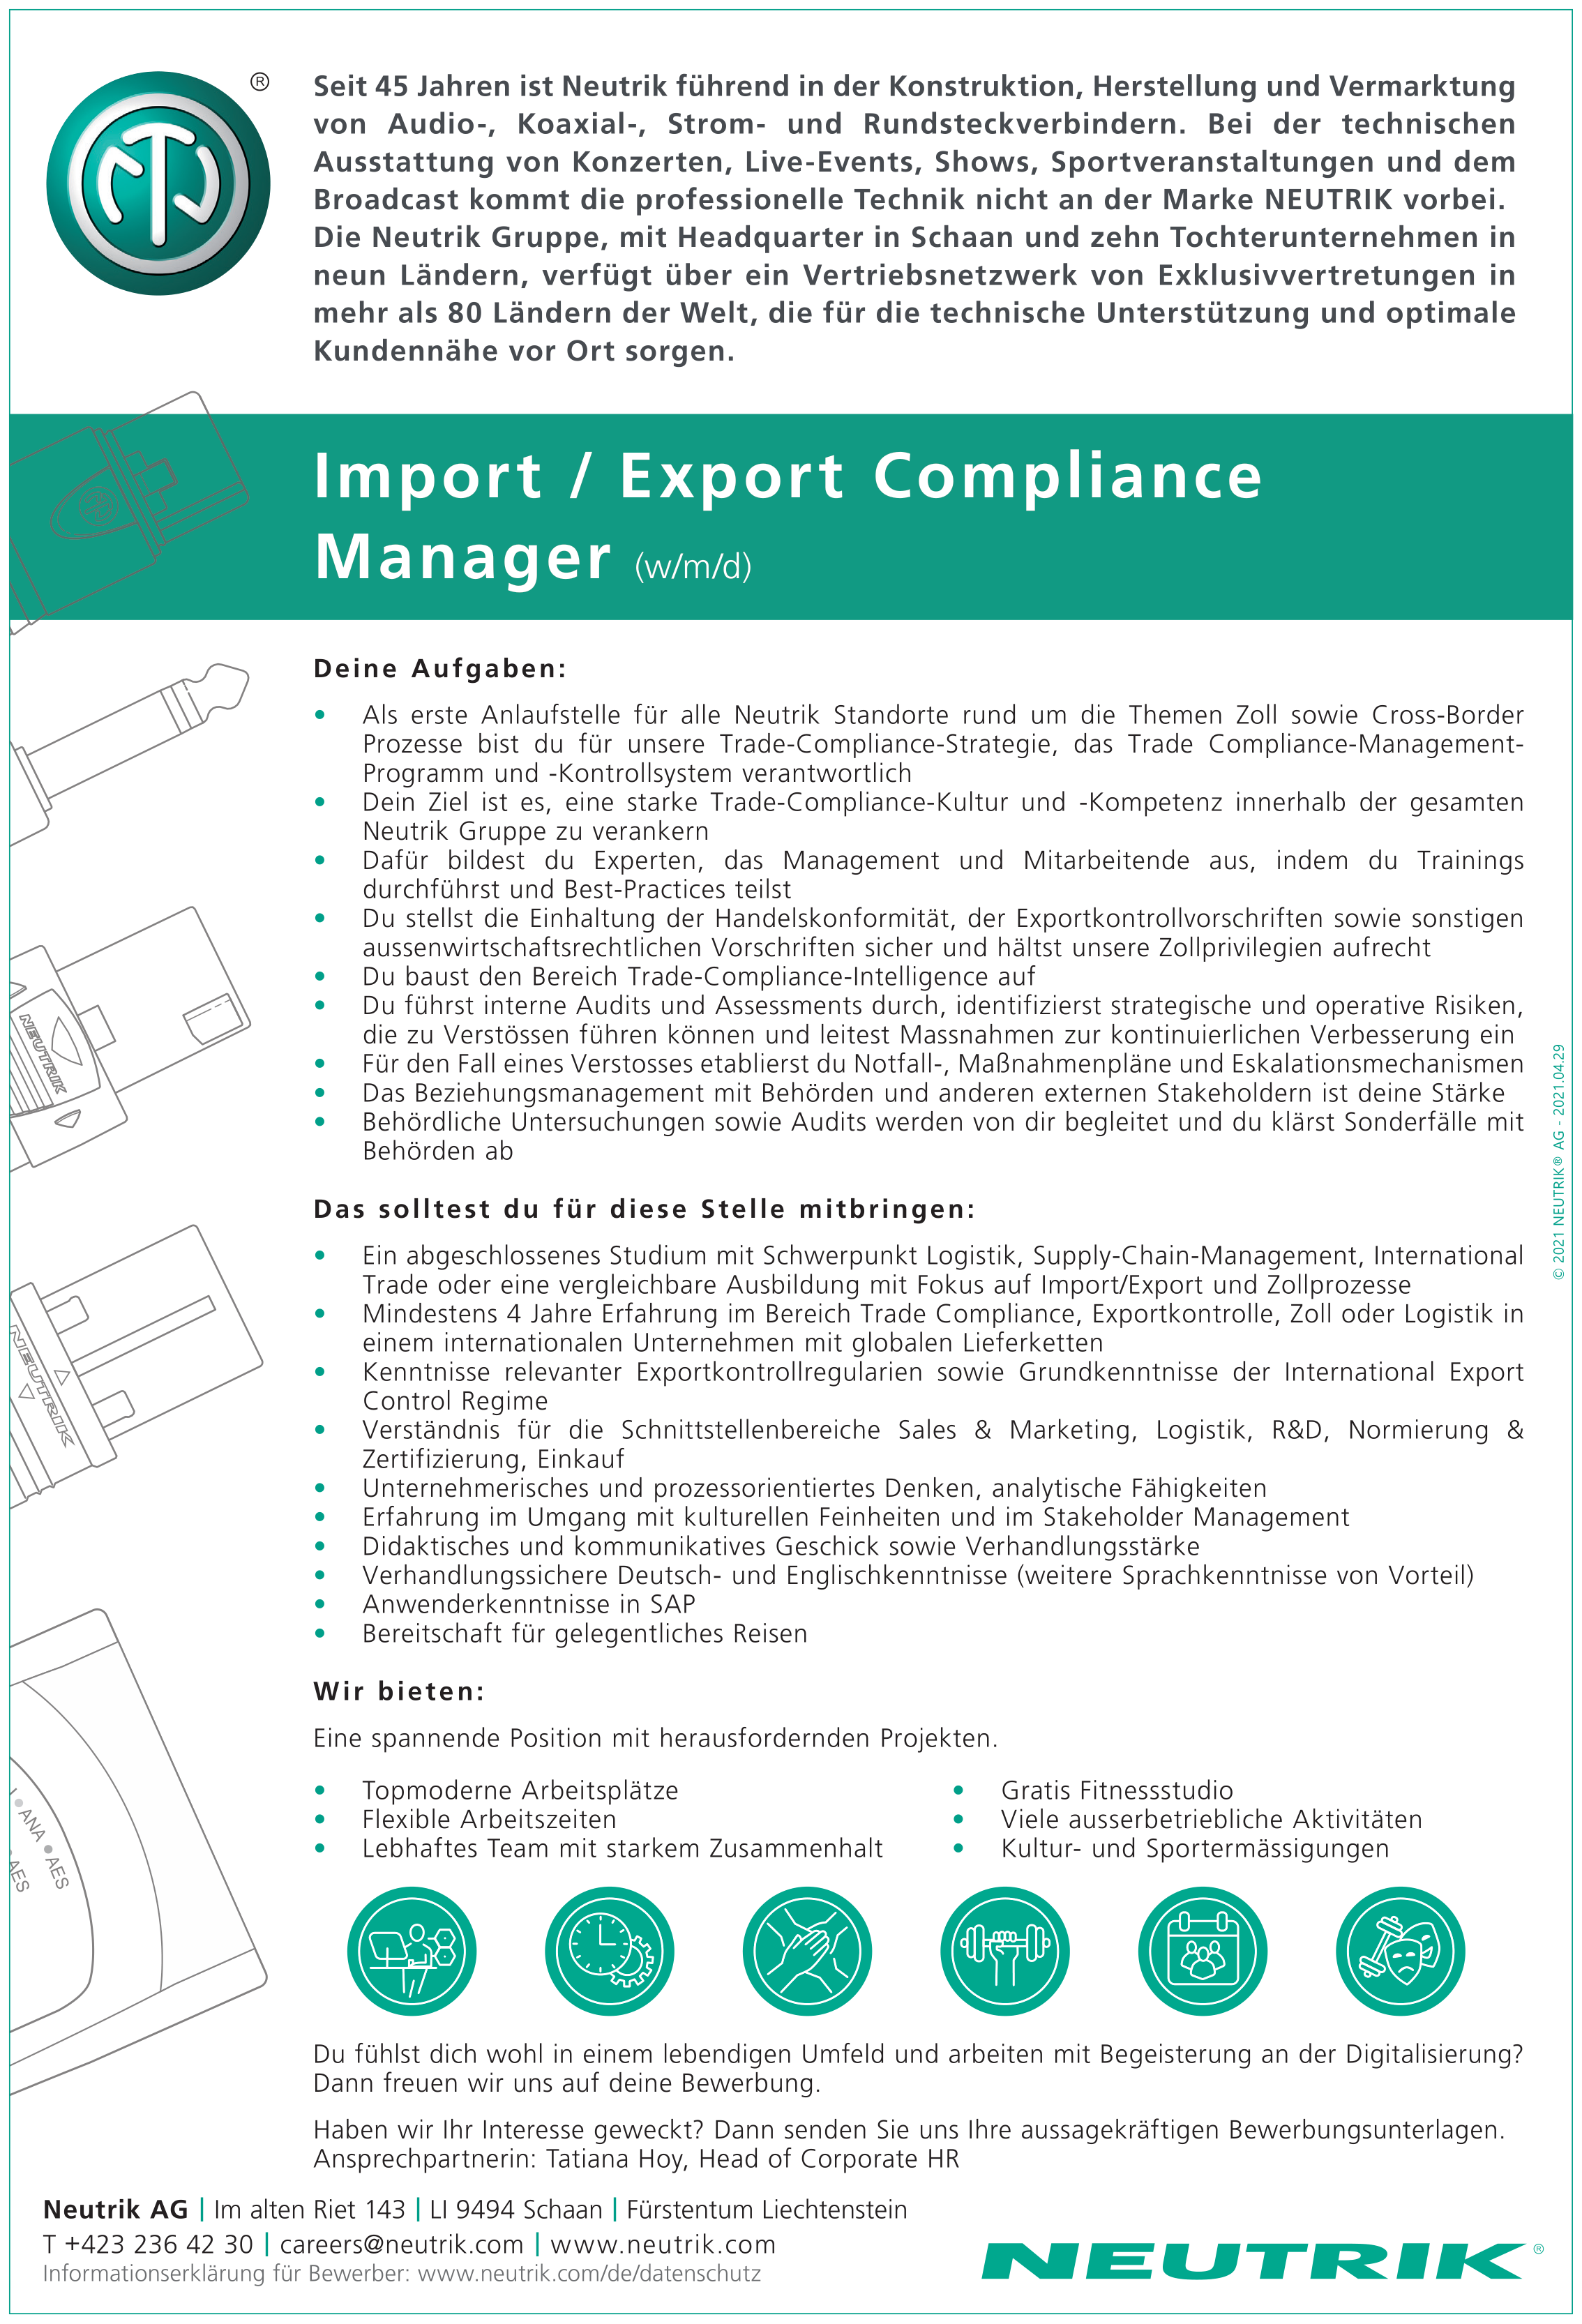 Import / Export Compliance Manager (w/m/d)